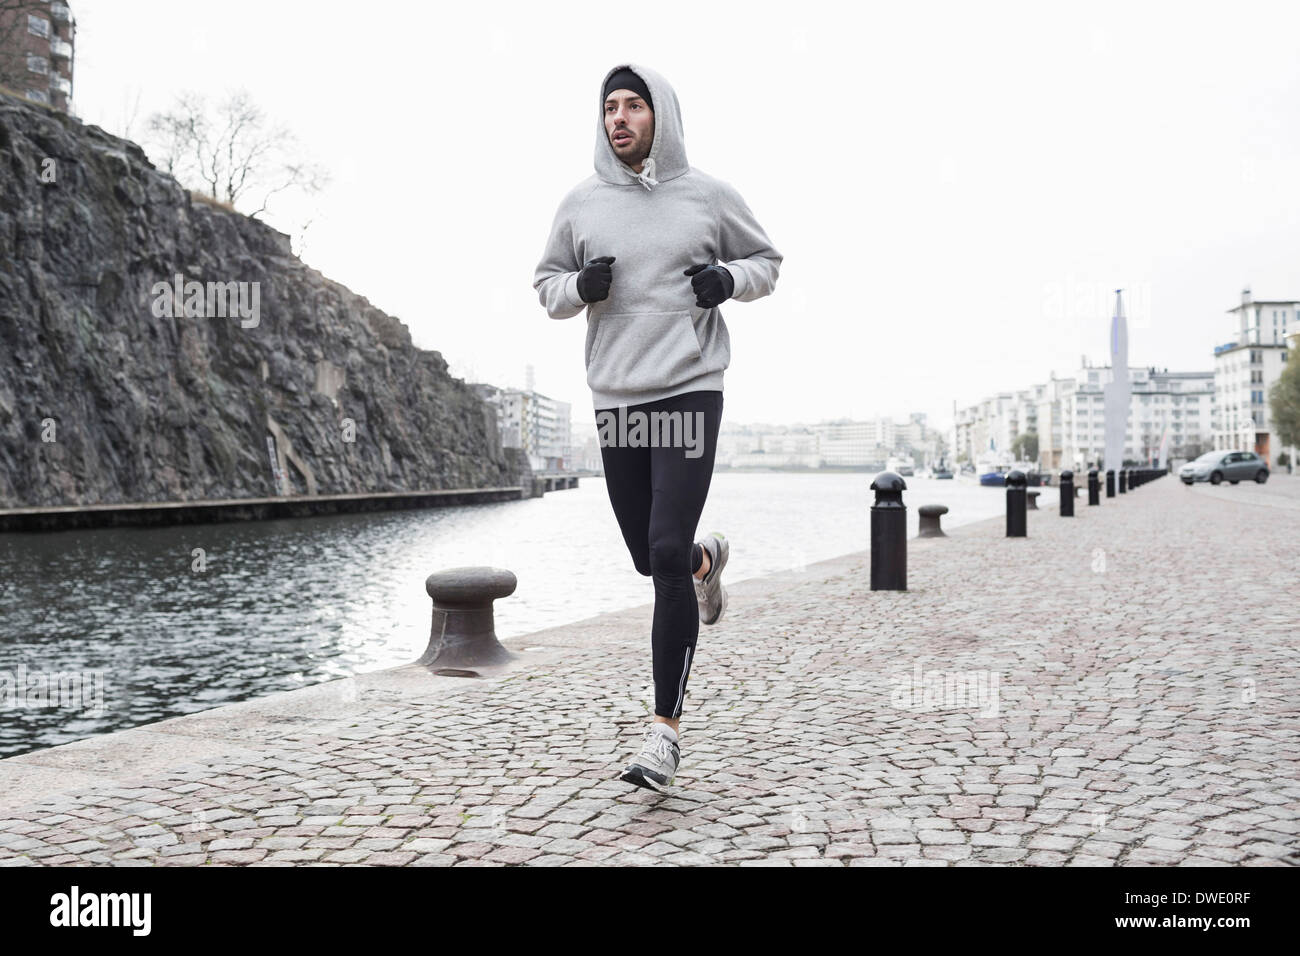 Man jogging at canal side - Stock Image